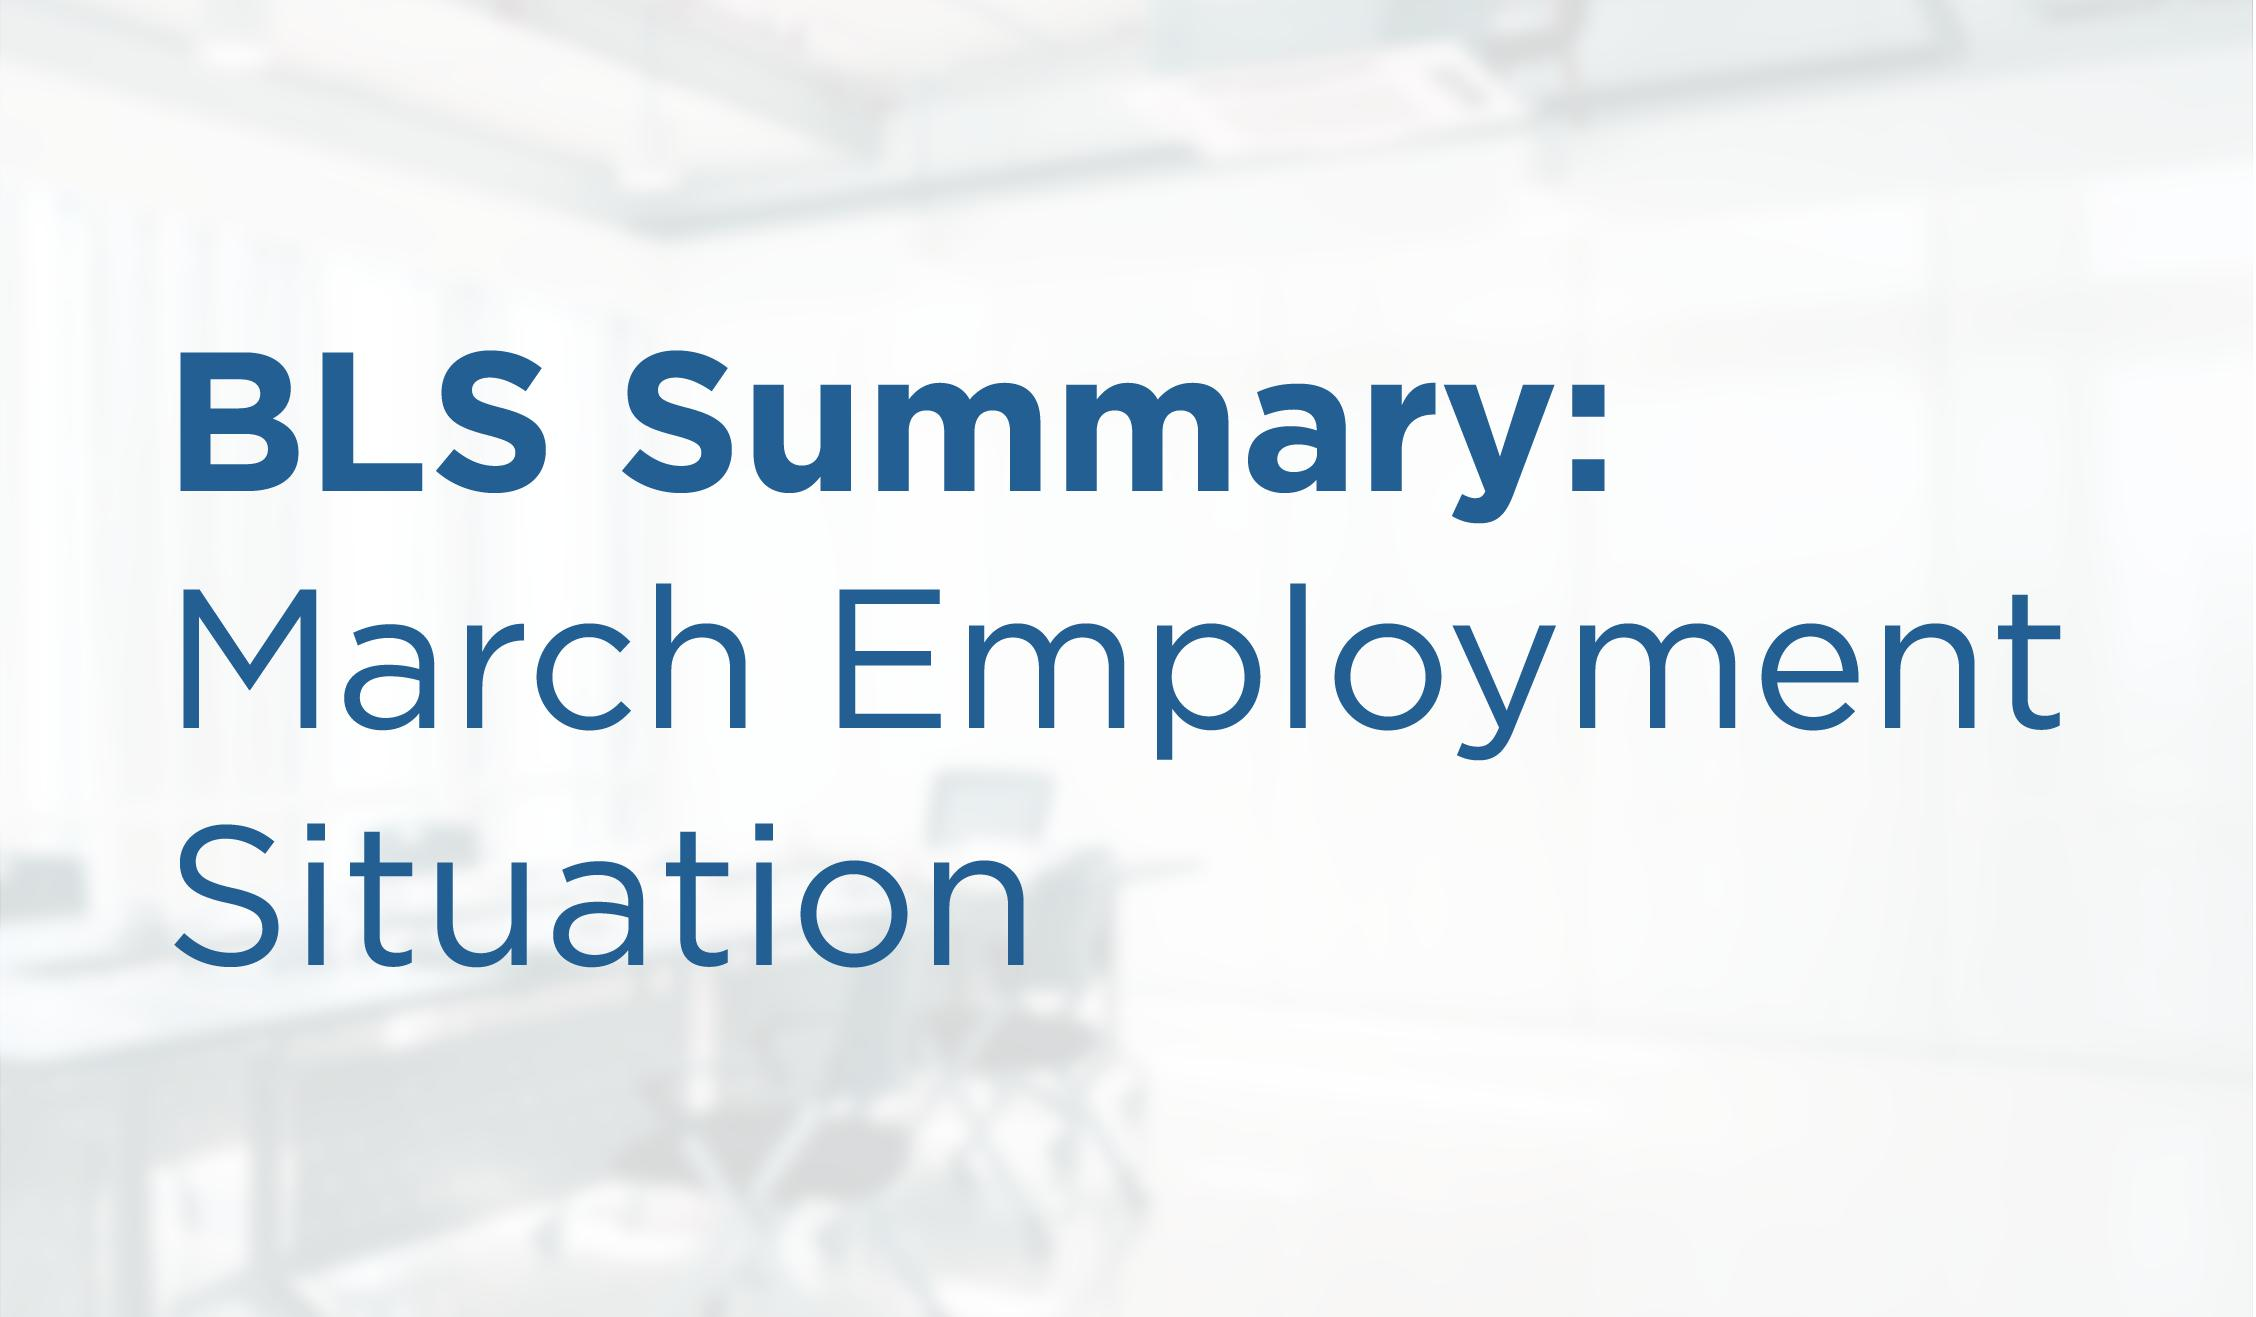 BLS Summary: March Employment Situation